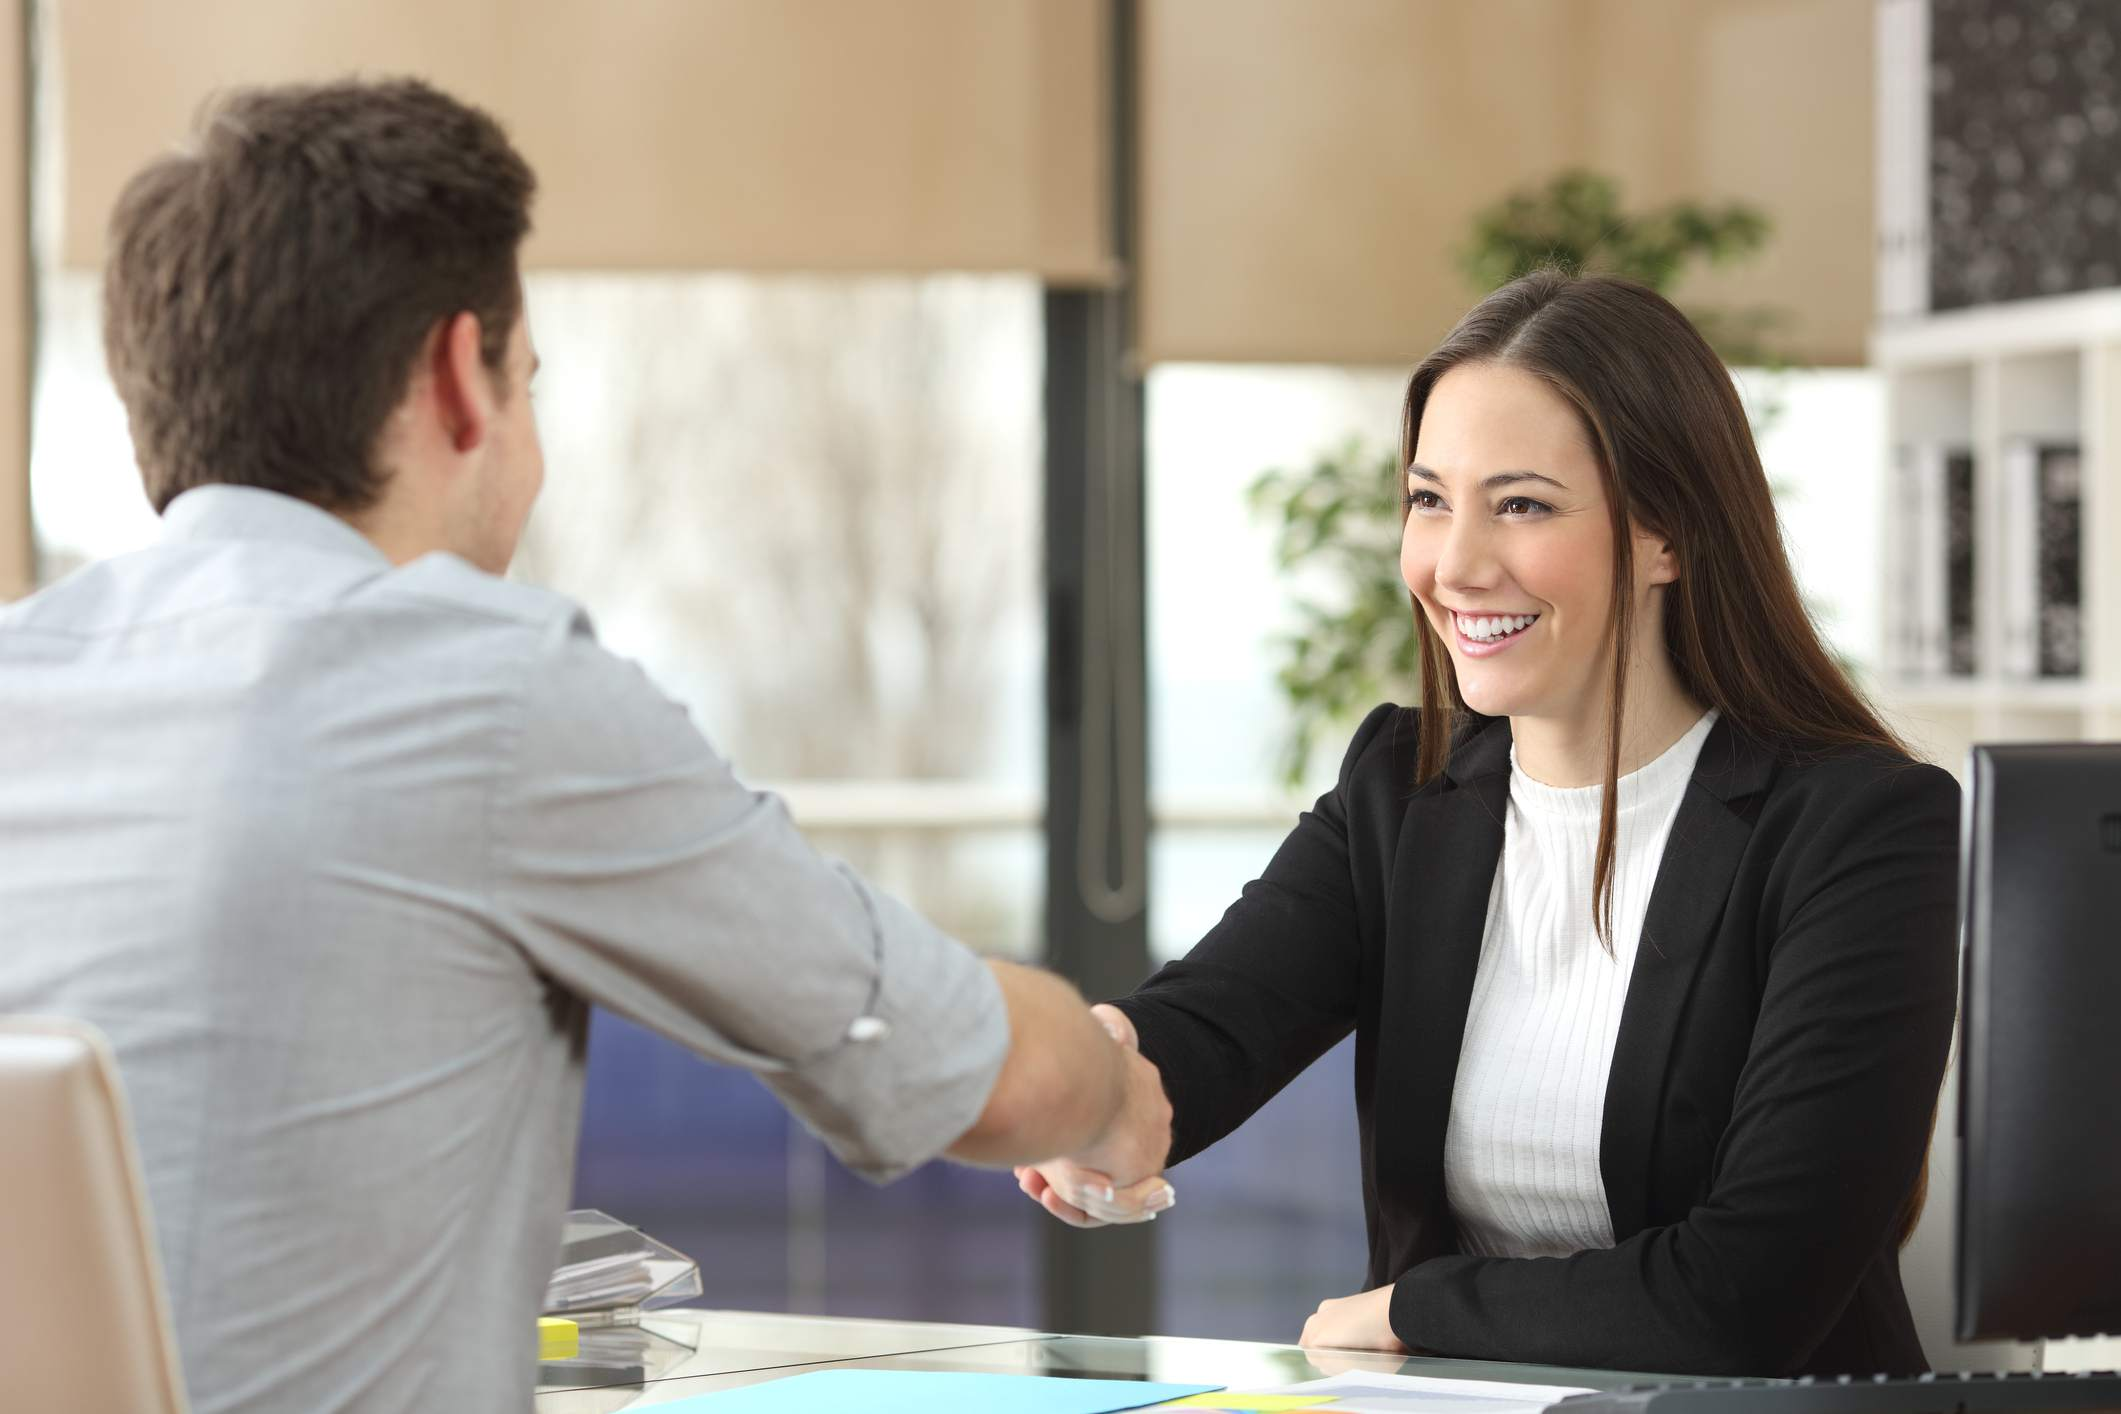 Student handshaking with client closing deal